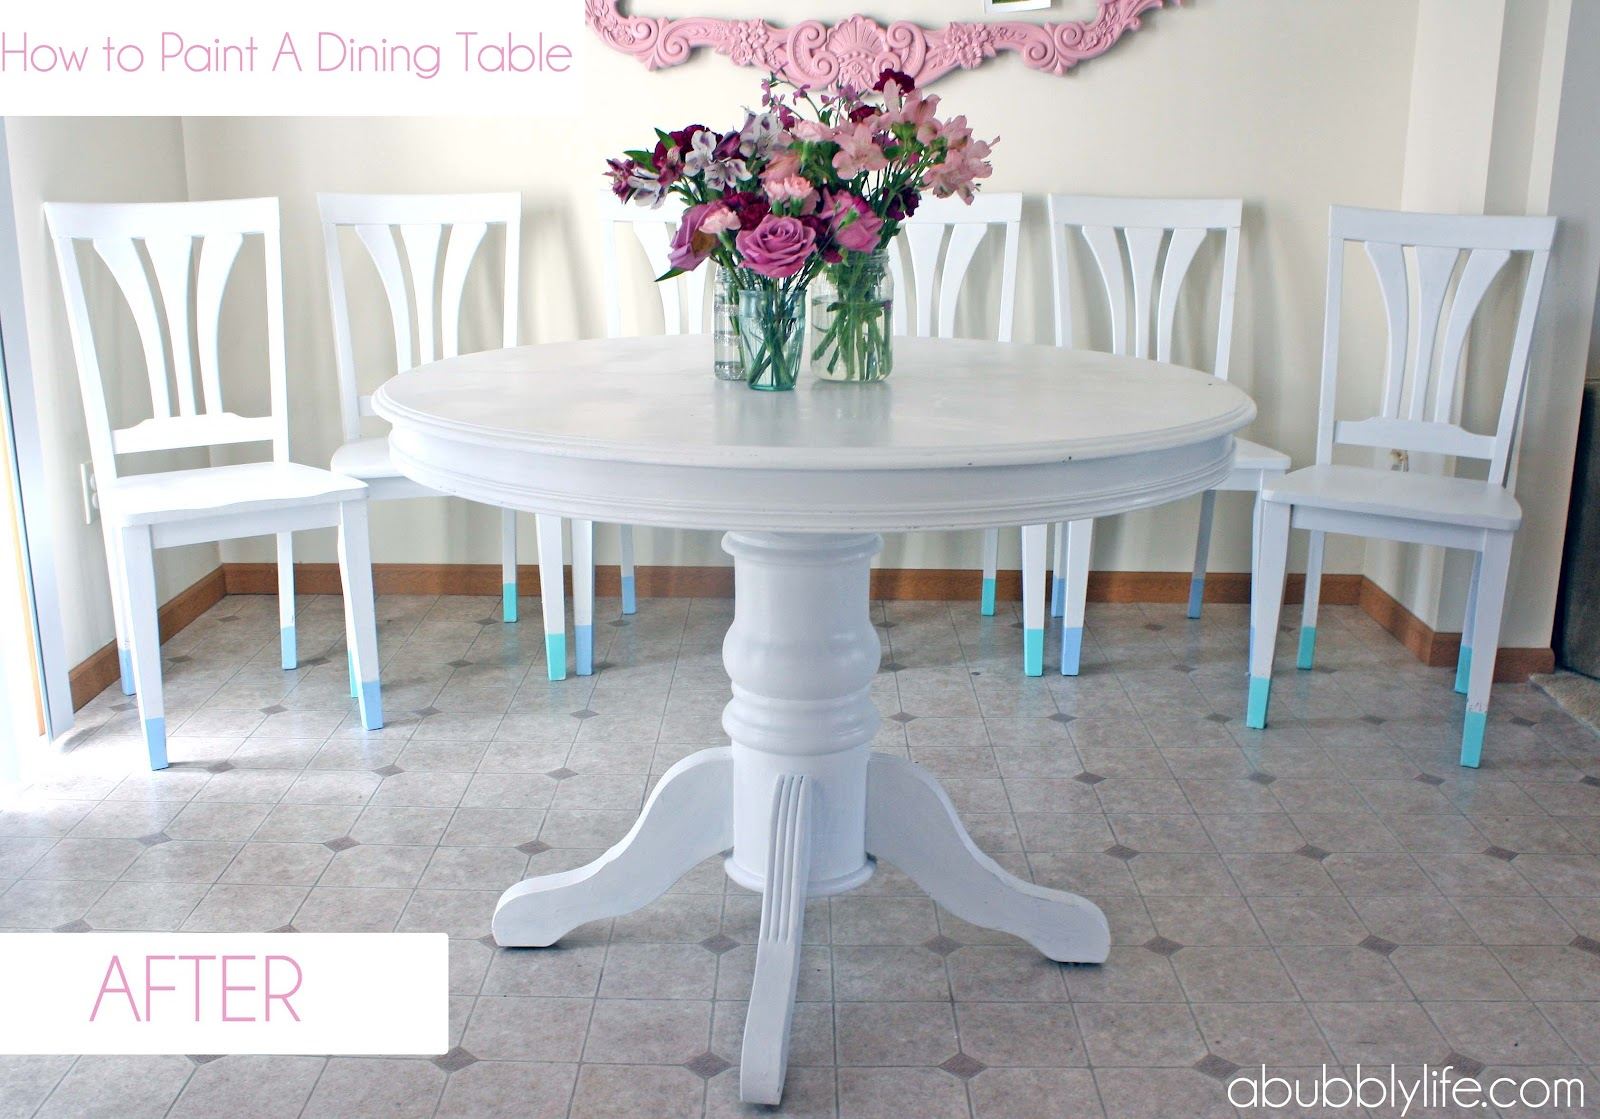 Painting Dining Room Table How to Paint a Dining Room Table & Chairs! Makeover Reveal!